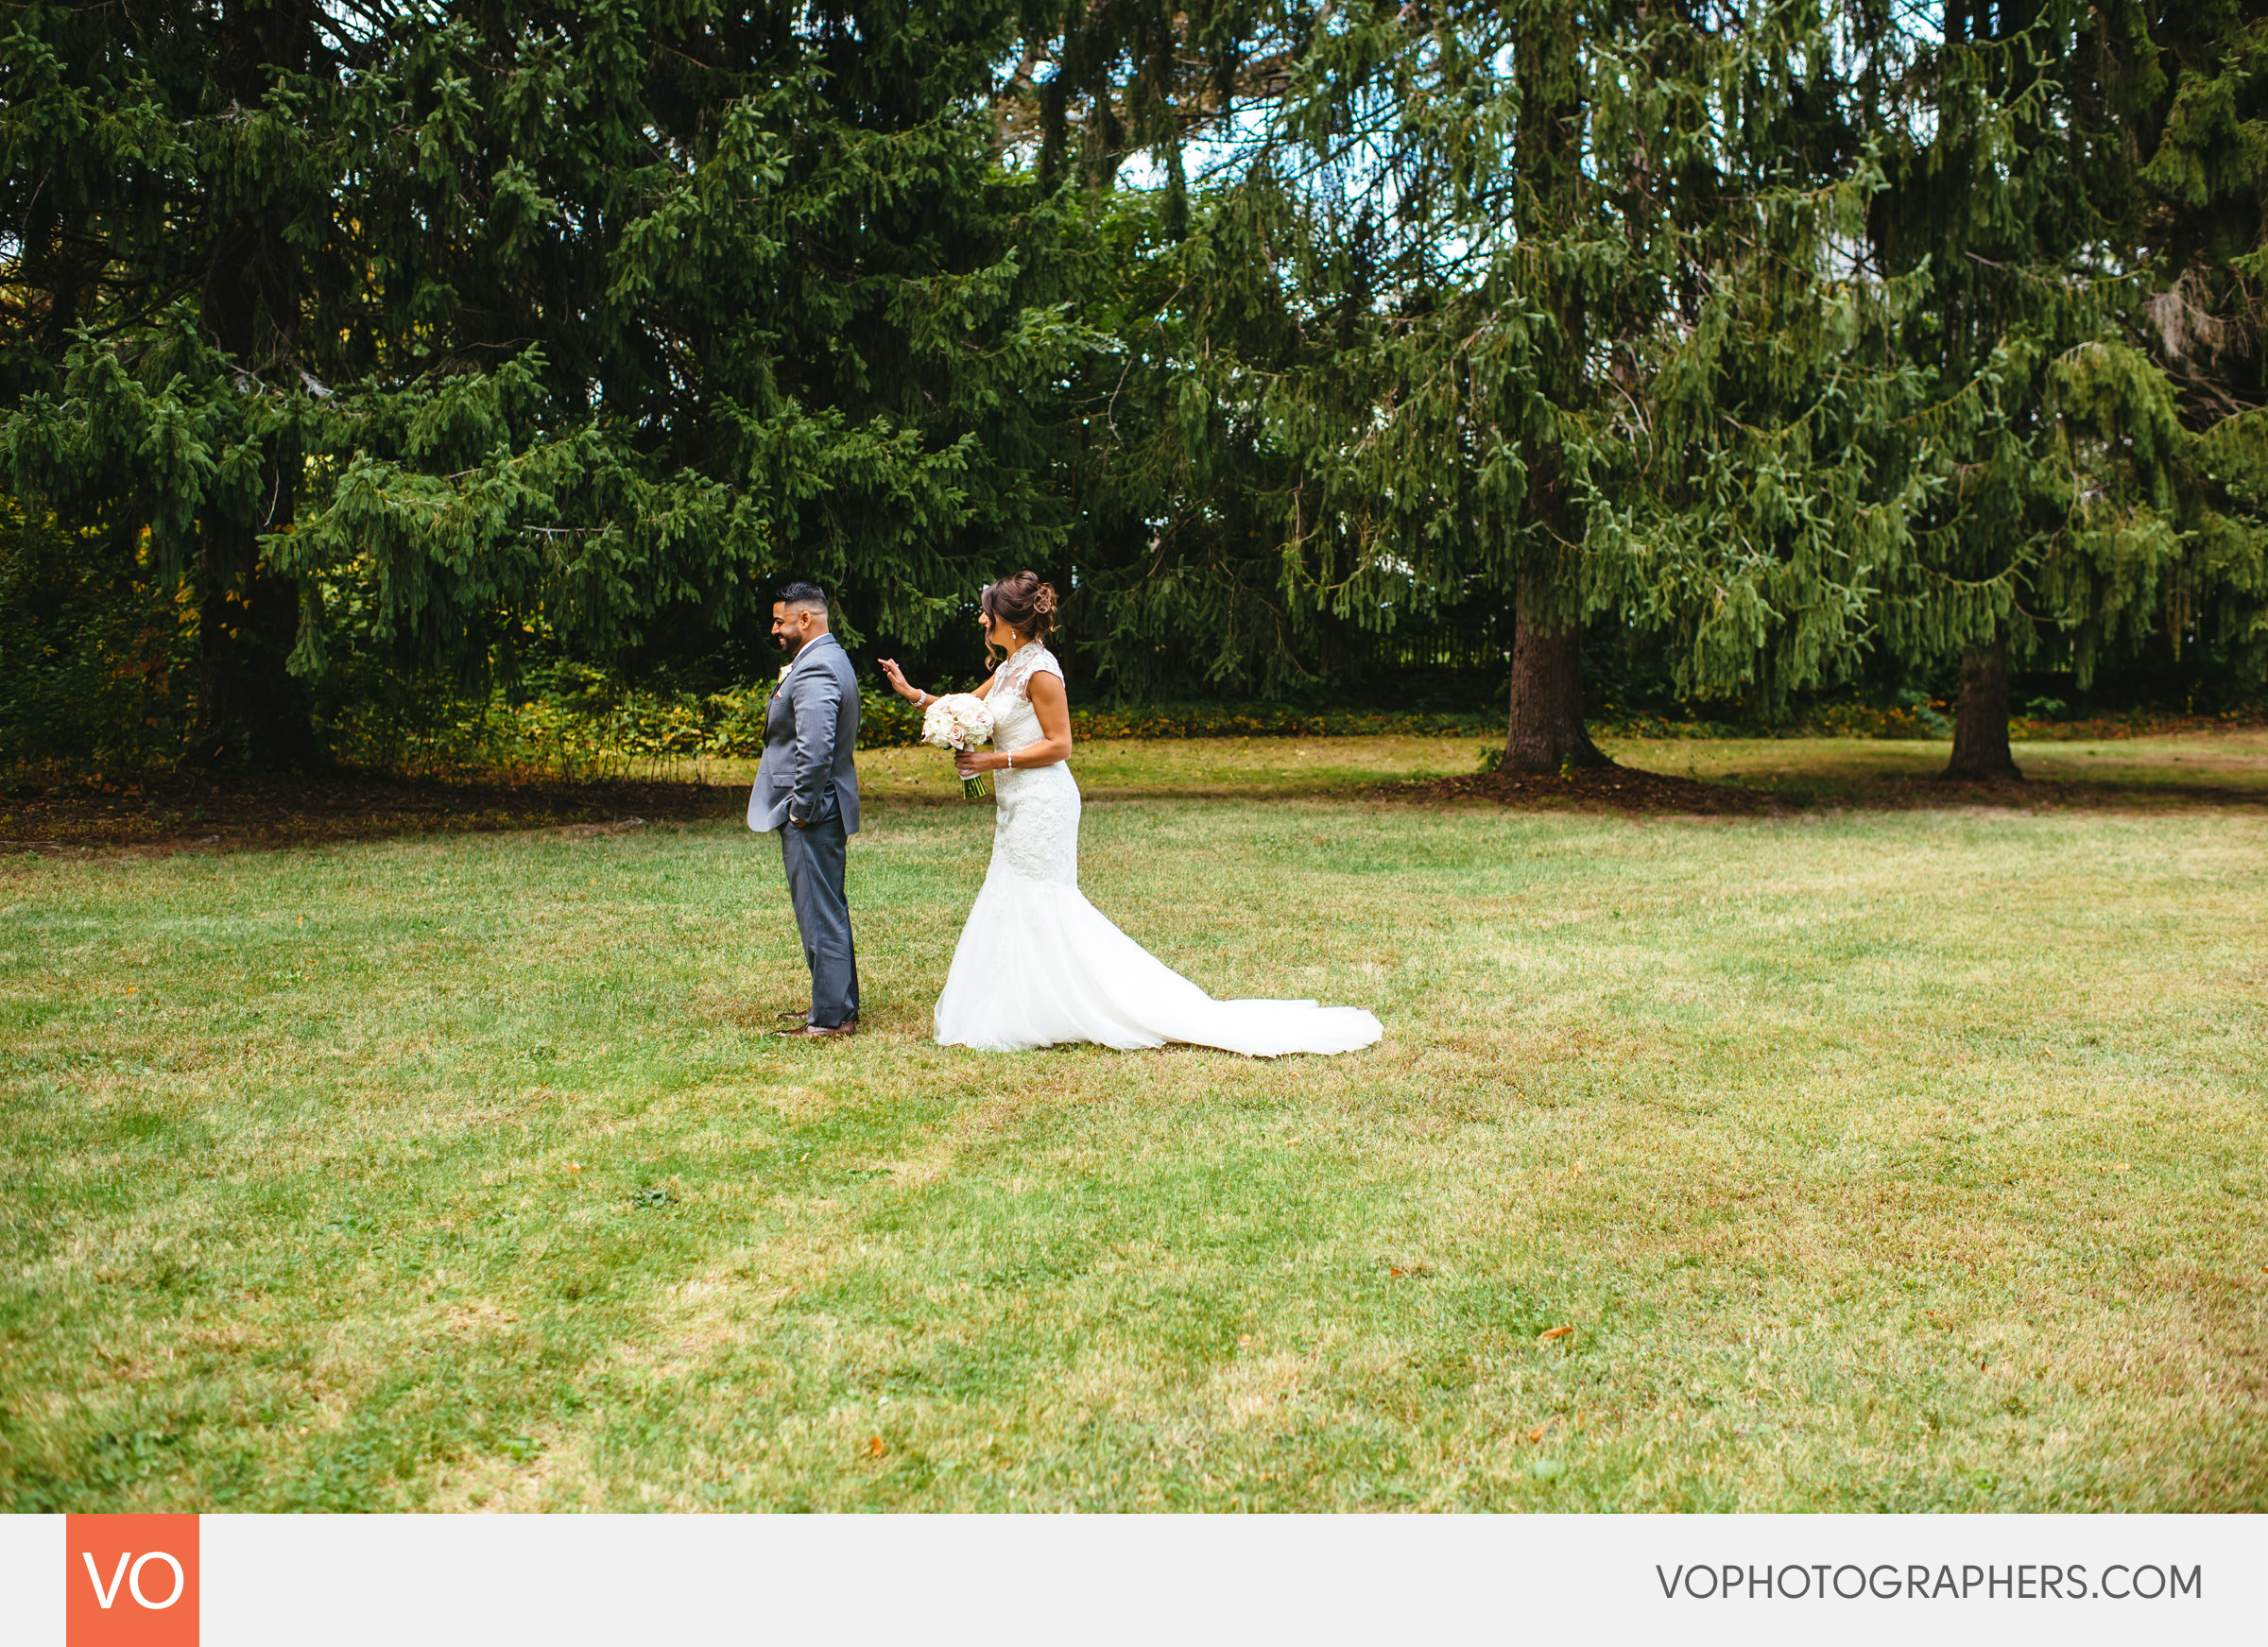 Oriana-Barem-Lakeview-Pavilion-Wedding-0014